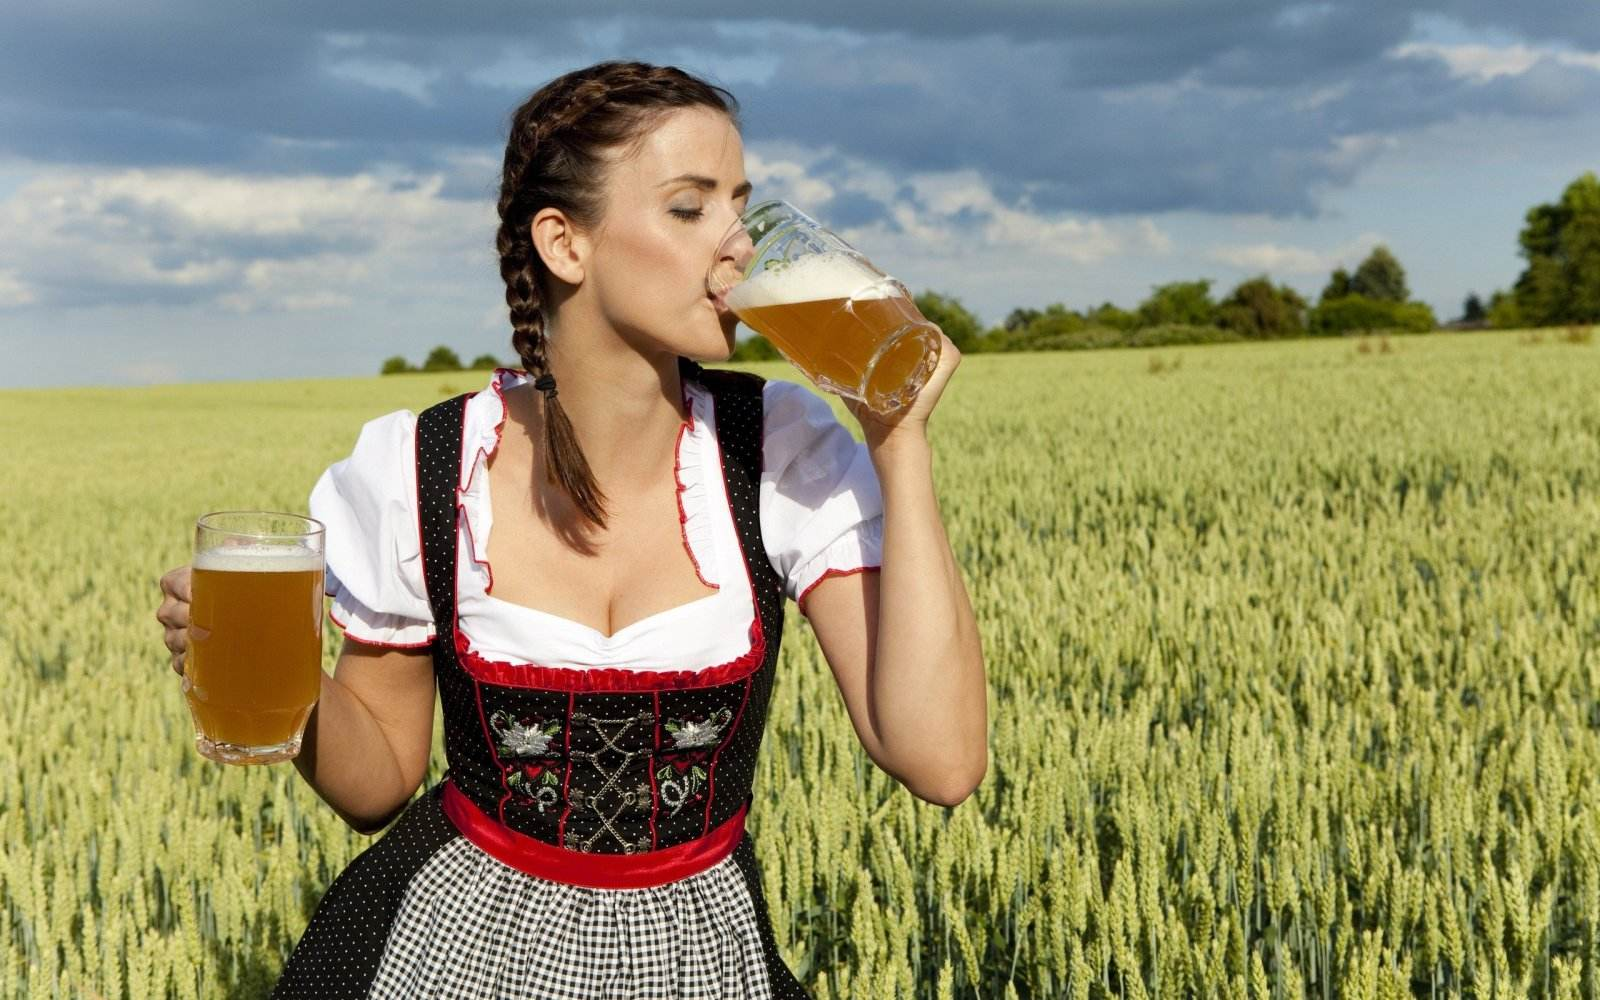 Download Oktoberfest Wallpapers in HD with hot Babe – 2016